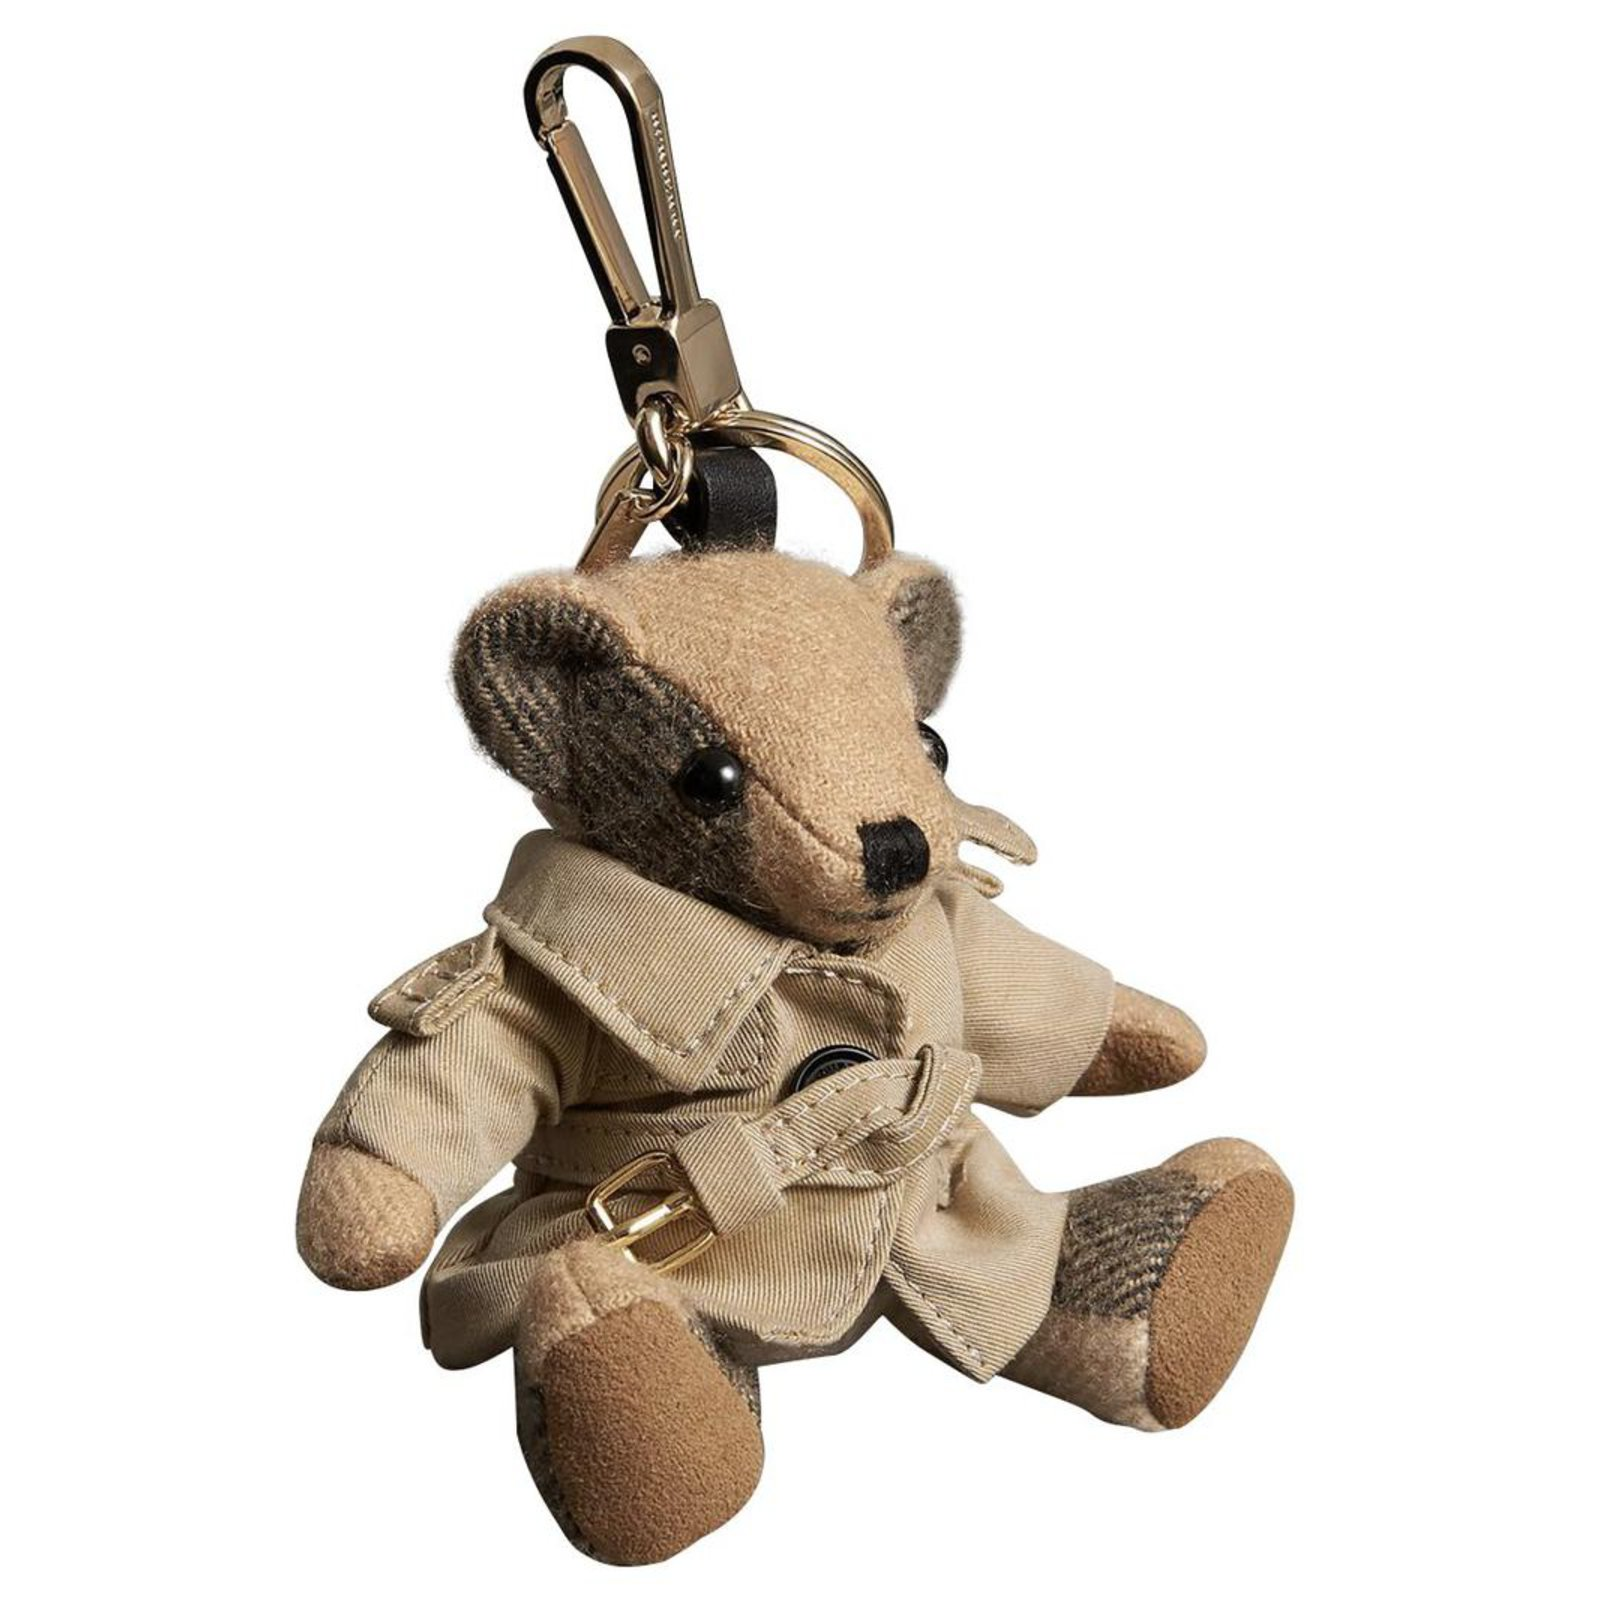 no sale tax clearance sale classic styles Burberry BURBERRY, Key ring Thomas Bear with trench coat KEY RING ...